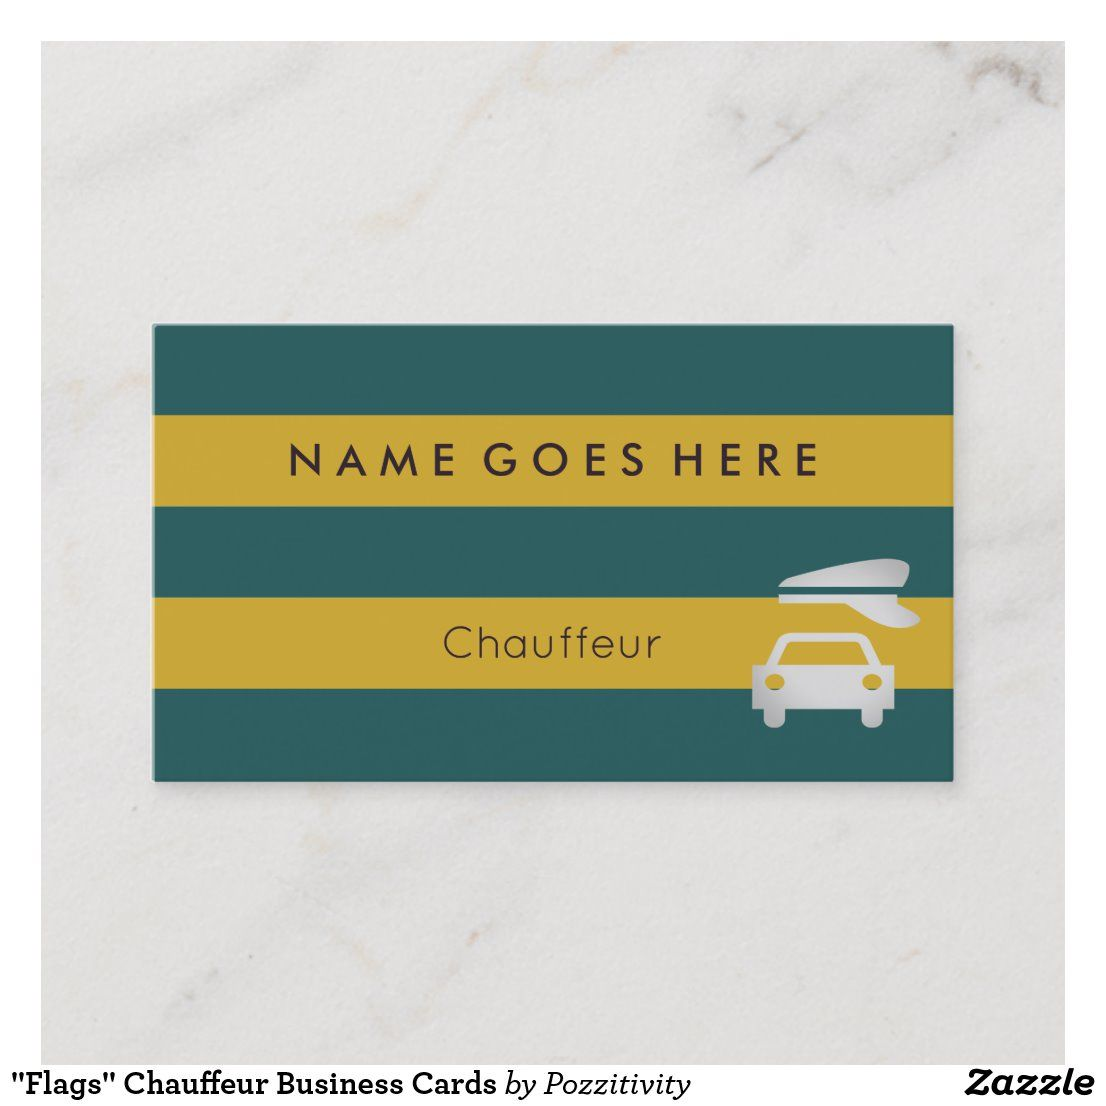 Flags Chauffeur Business Cards Zazzle Com In 2021 Chauffeur Business Cards Modern Business Cards